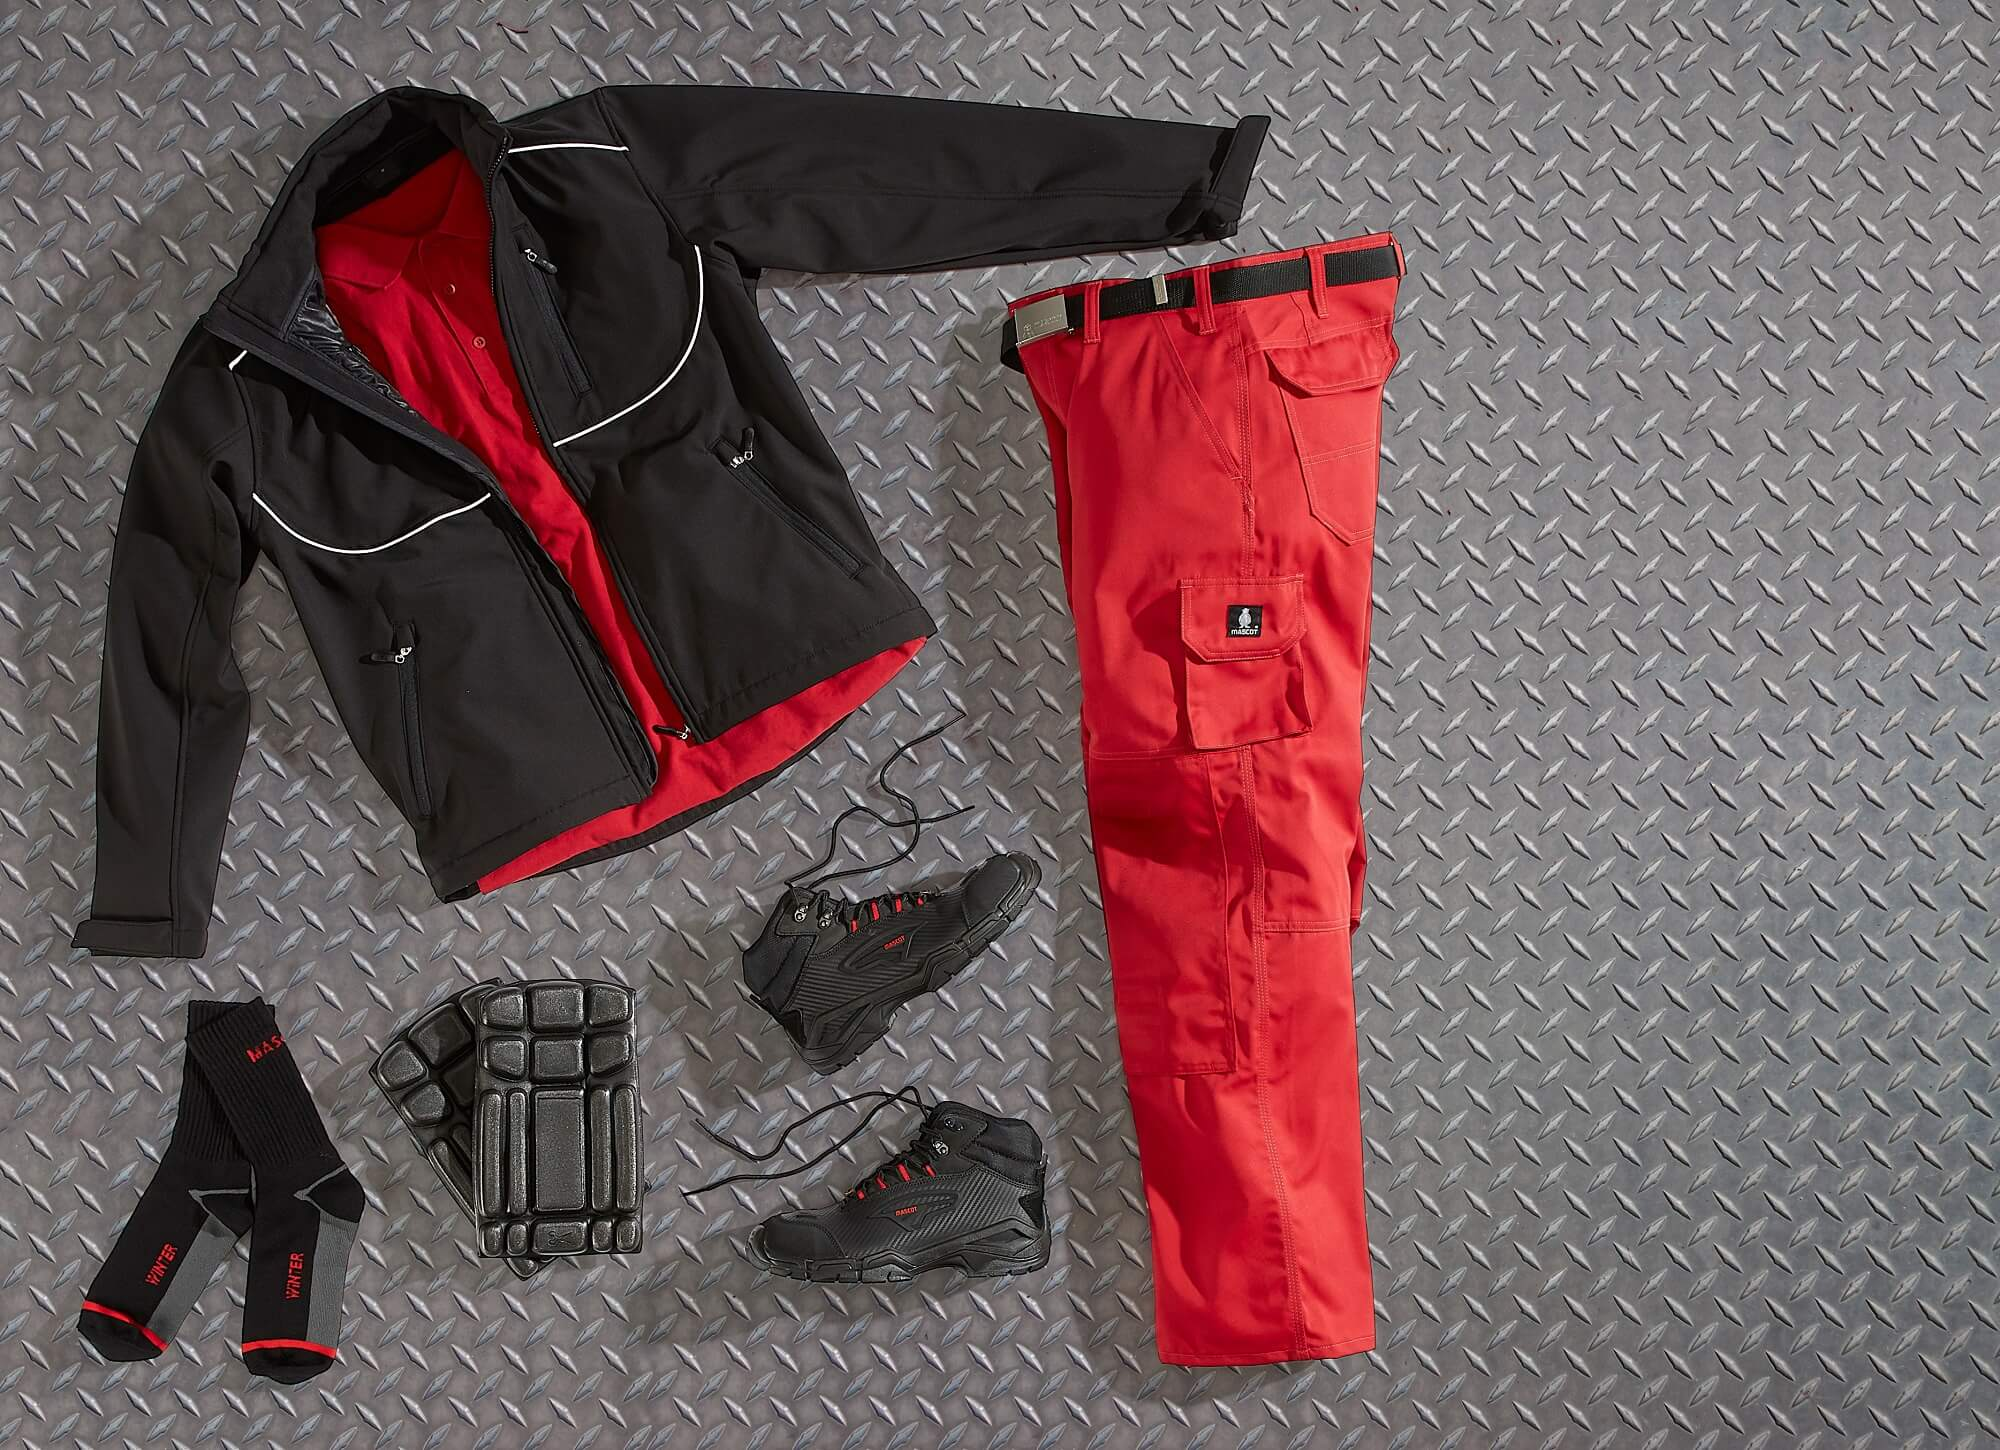 Red - Workwear, Safety Boot & Accessories - Collage